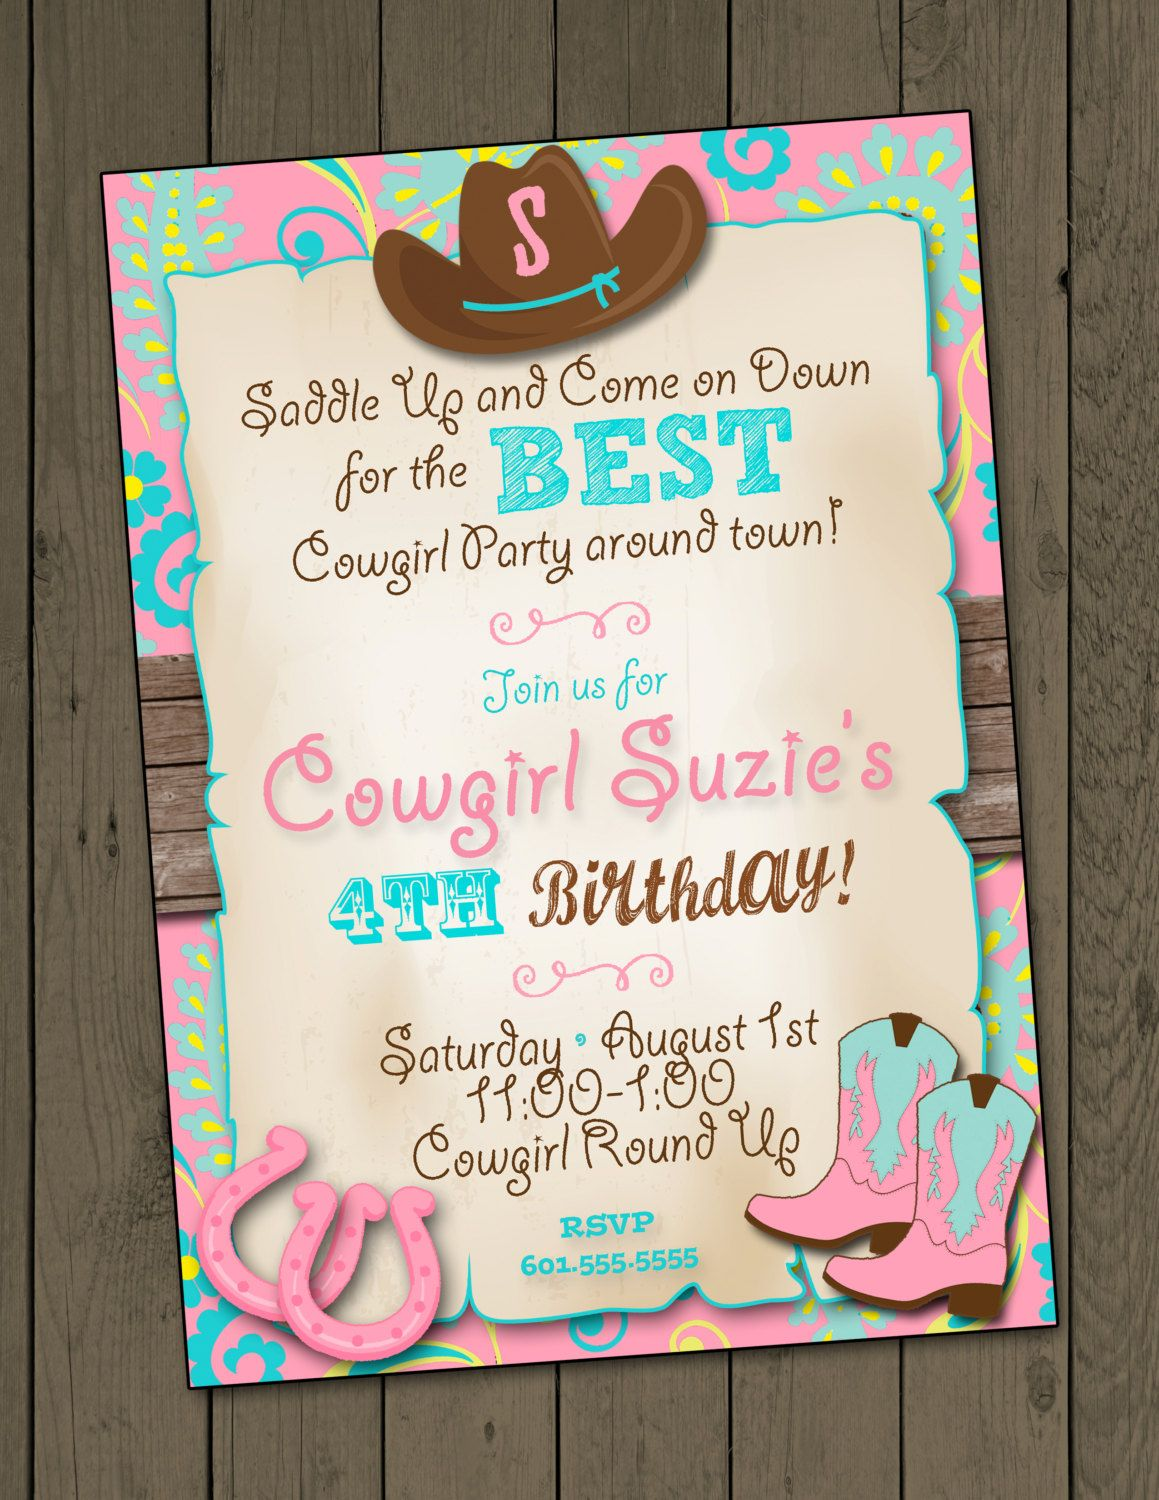 Cowgirl Invitation Cowgirl Birthday Party Invitation Cowgirl Party ...